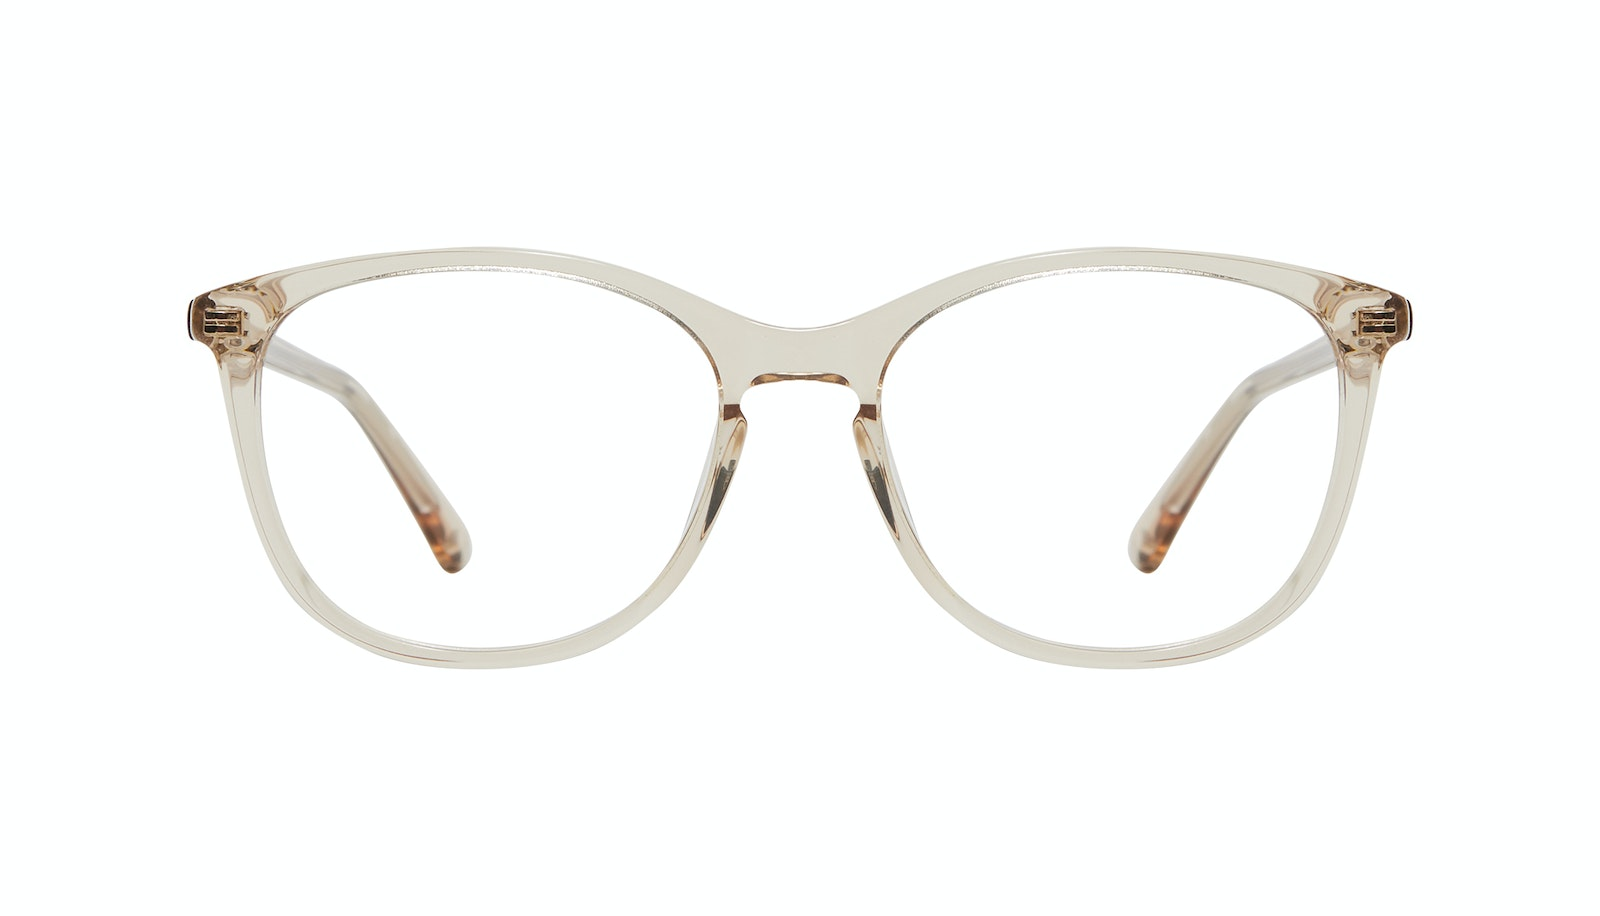 Affordable Fashion Glasses Rectangle Square Round Eyeglasses Women Nadine M Prosecco